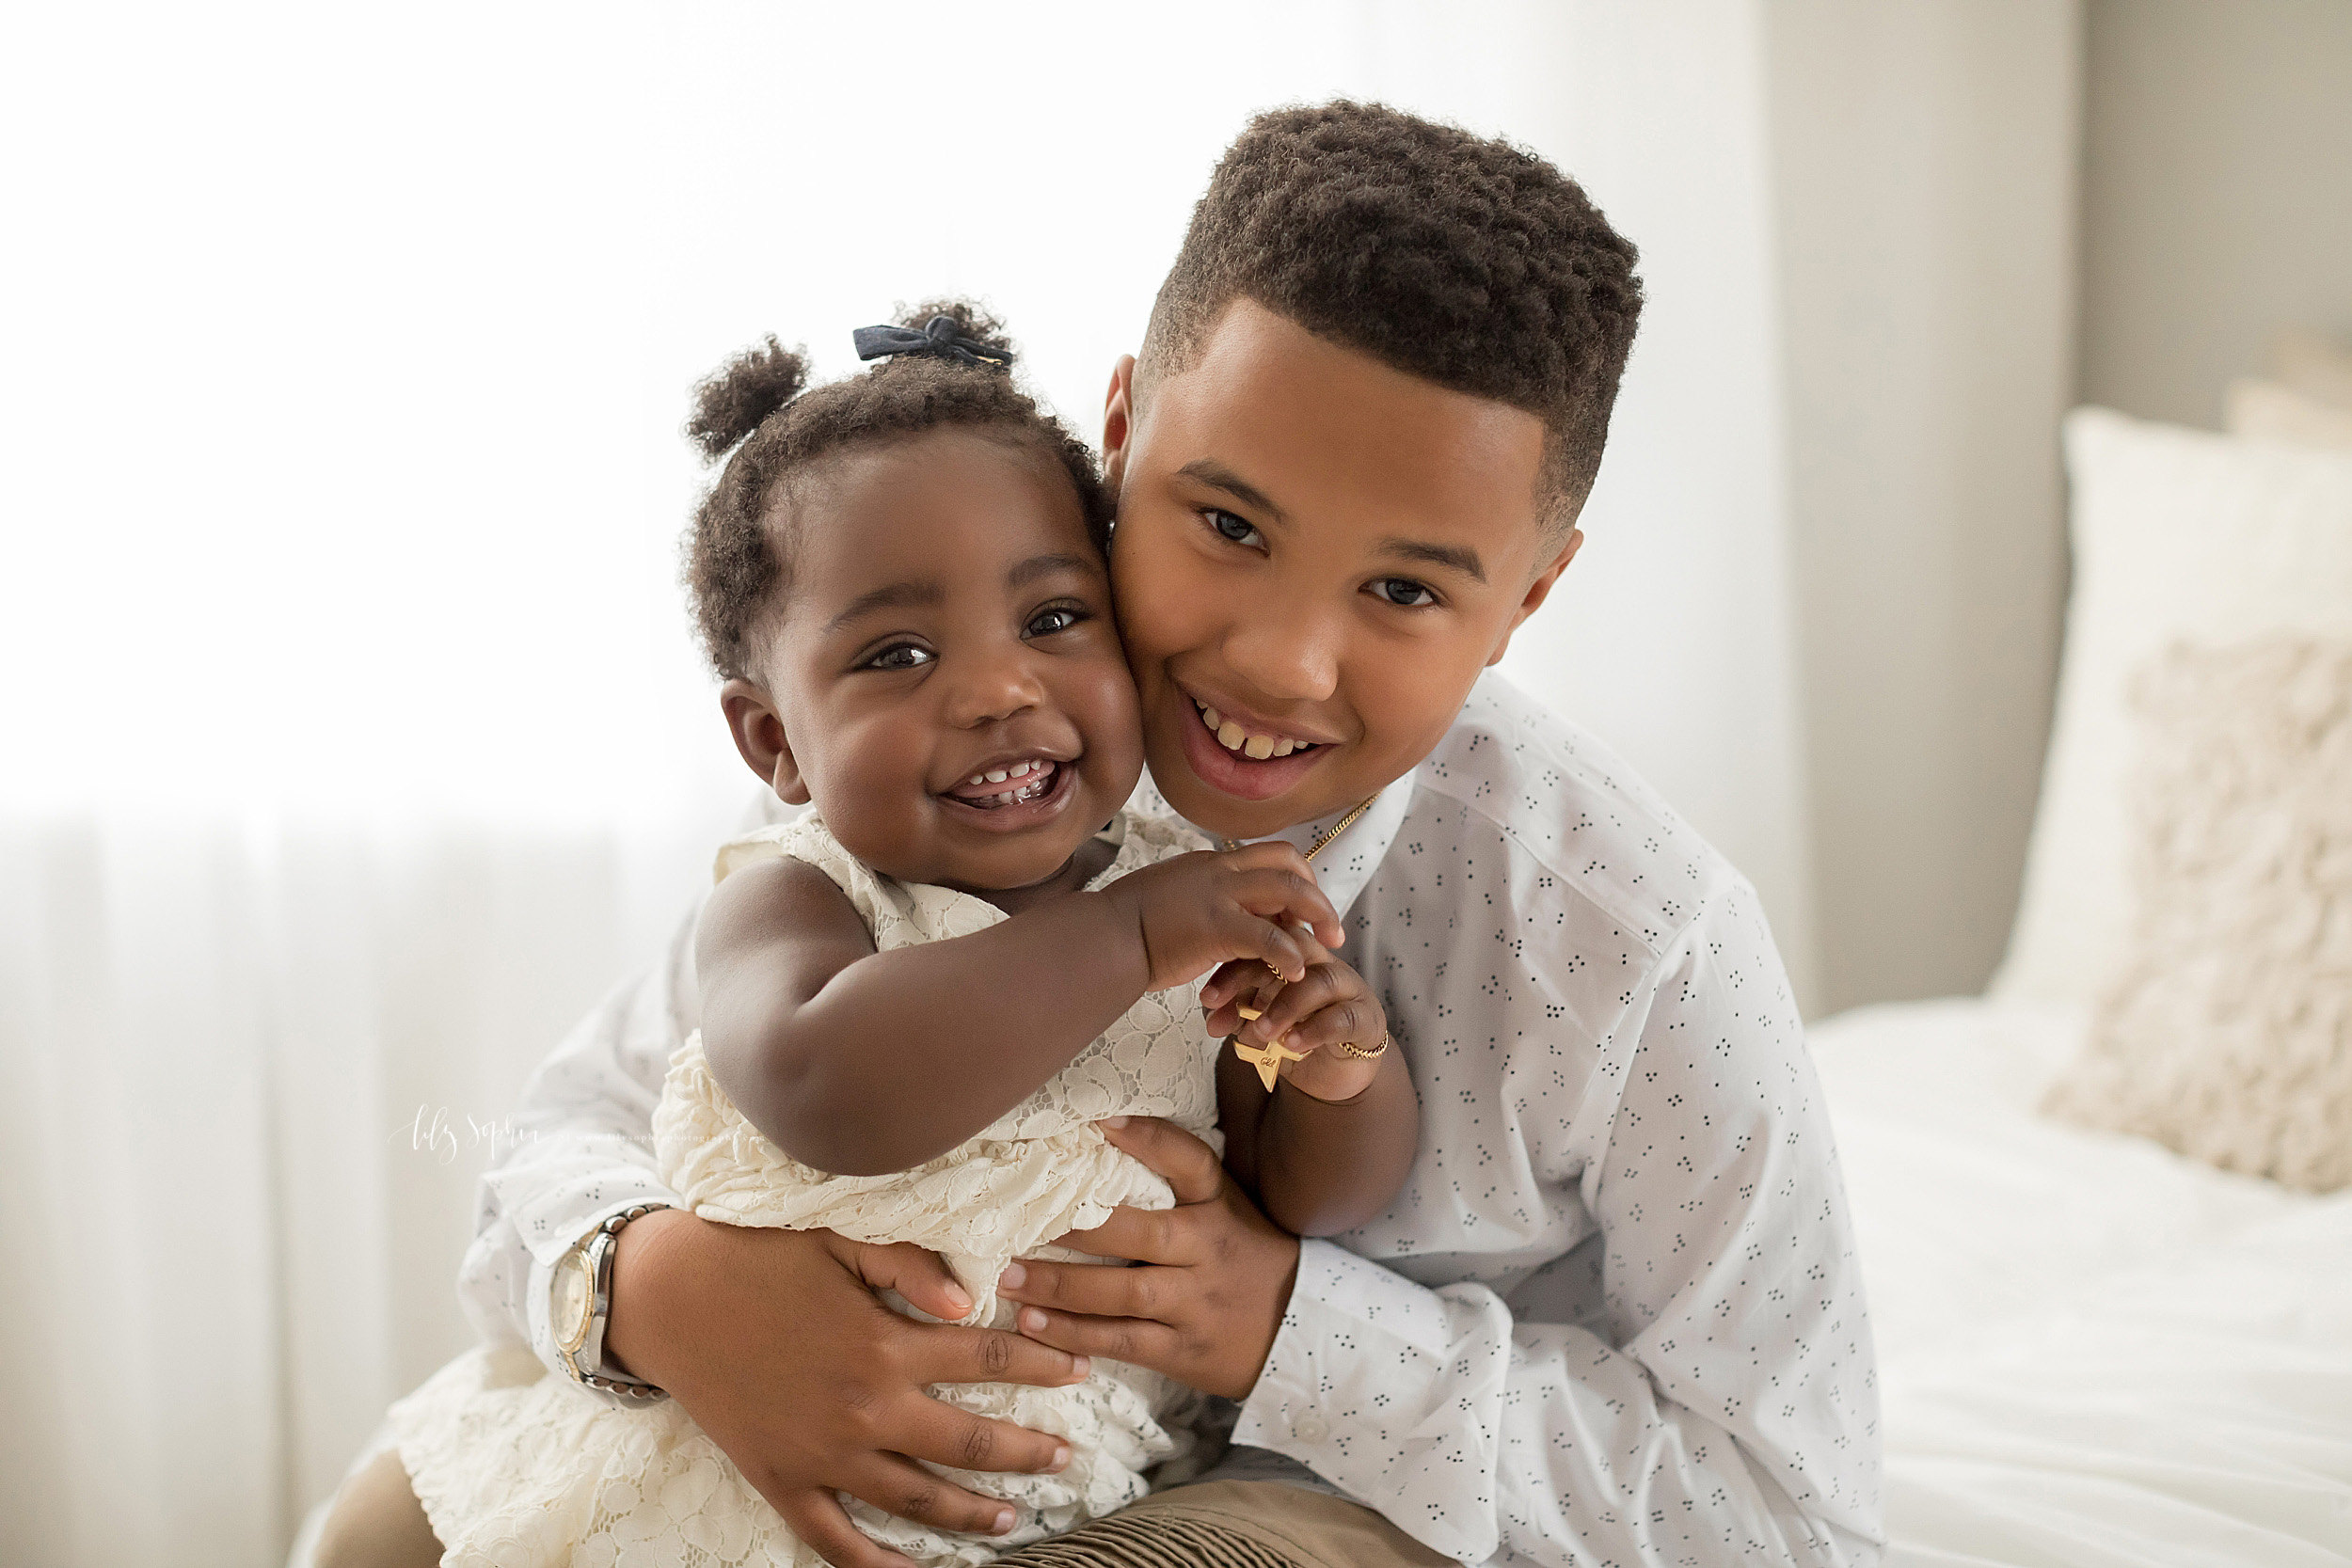 Photo of a happy African-American brother and sister taken by Lily Sophia Photography in Atlanta.  The brother is holding his sister on his lap as the two are cheek to cheek while smiling.